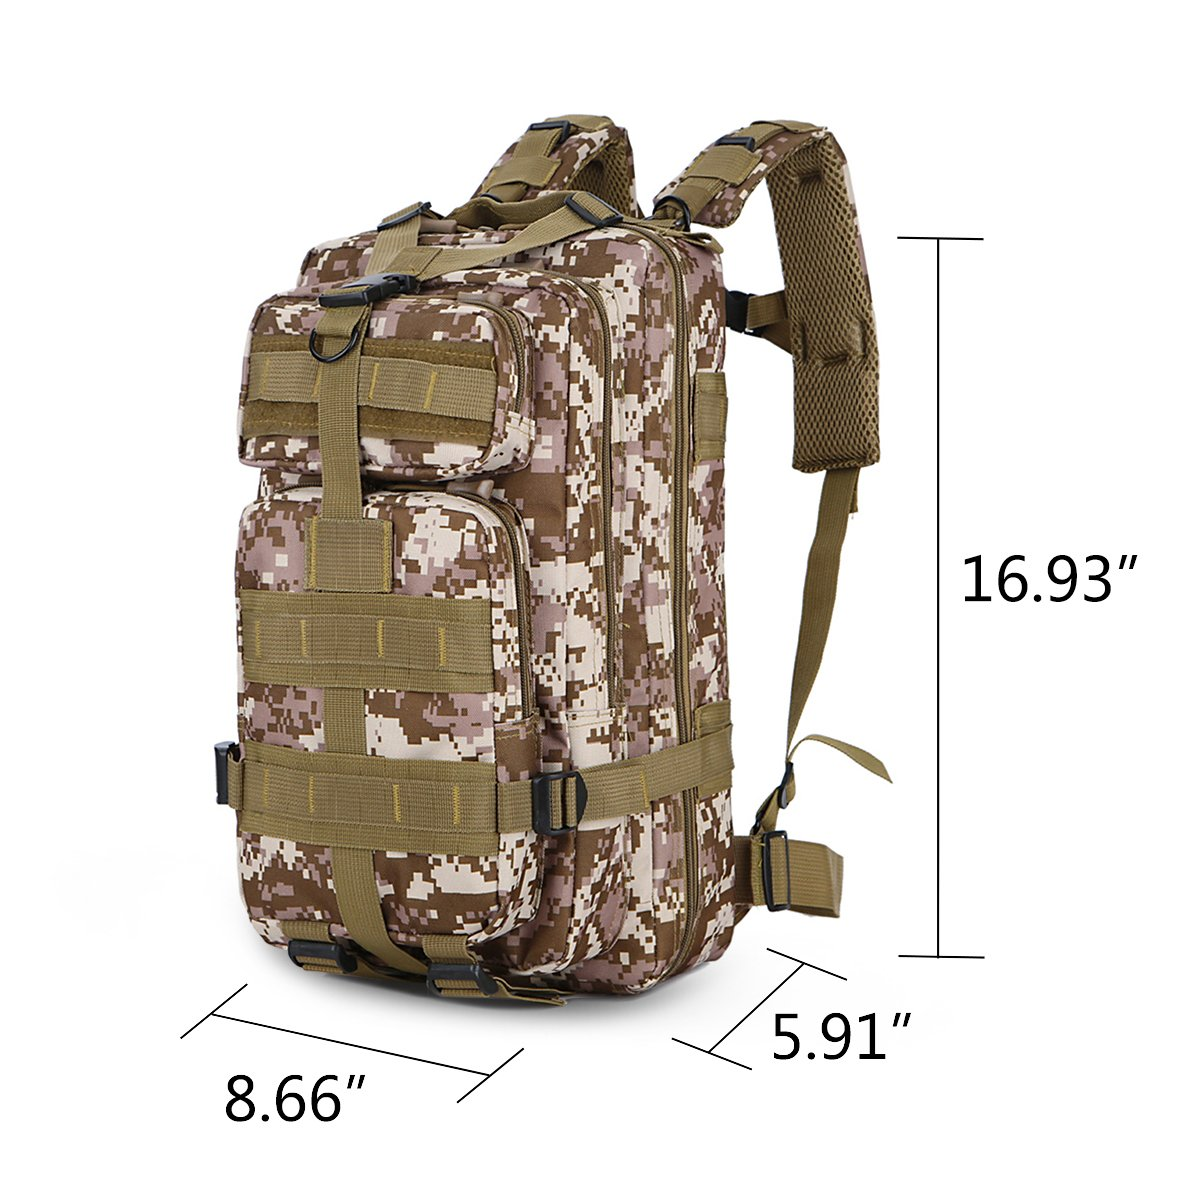 30L Military Tactical Backpack Waterproof Outdoor Bag for Hiking Camping Climbing Trekking Travel Daypack Size 8.6\'\'x 5.9\'\'x 16.9\'\' (Camouflage2)